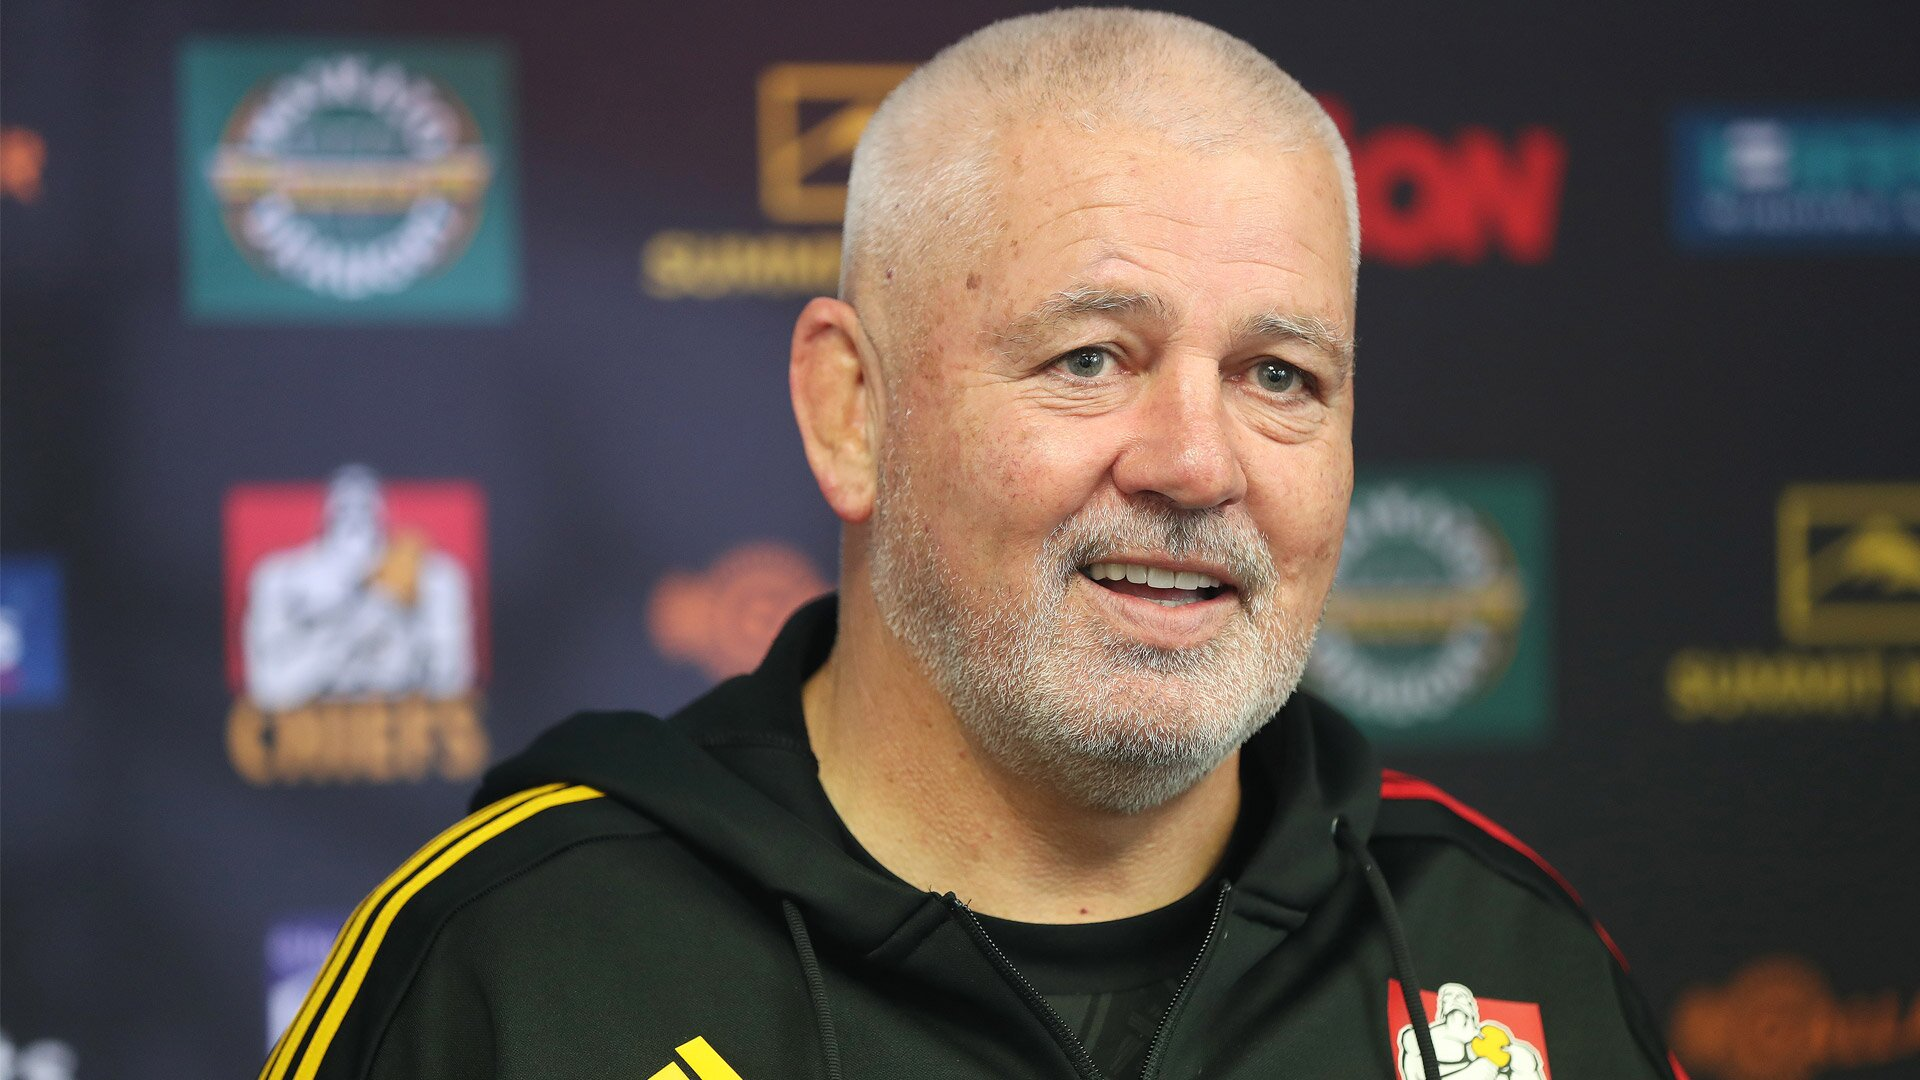 Warren Gatland open to working for the Chiefs 'for free' if 2021 British and Irish Lions tour is cancelled